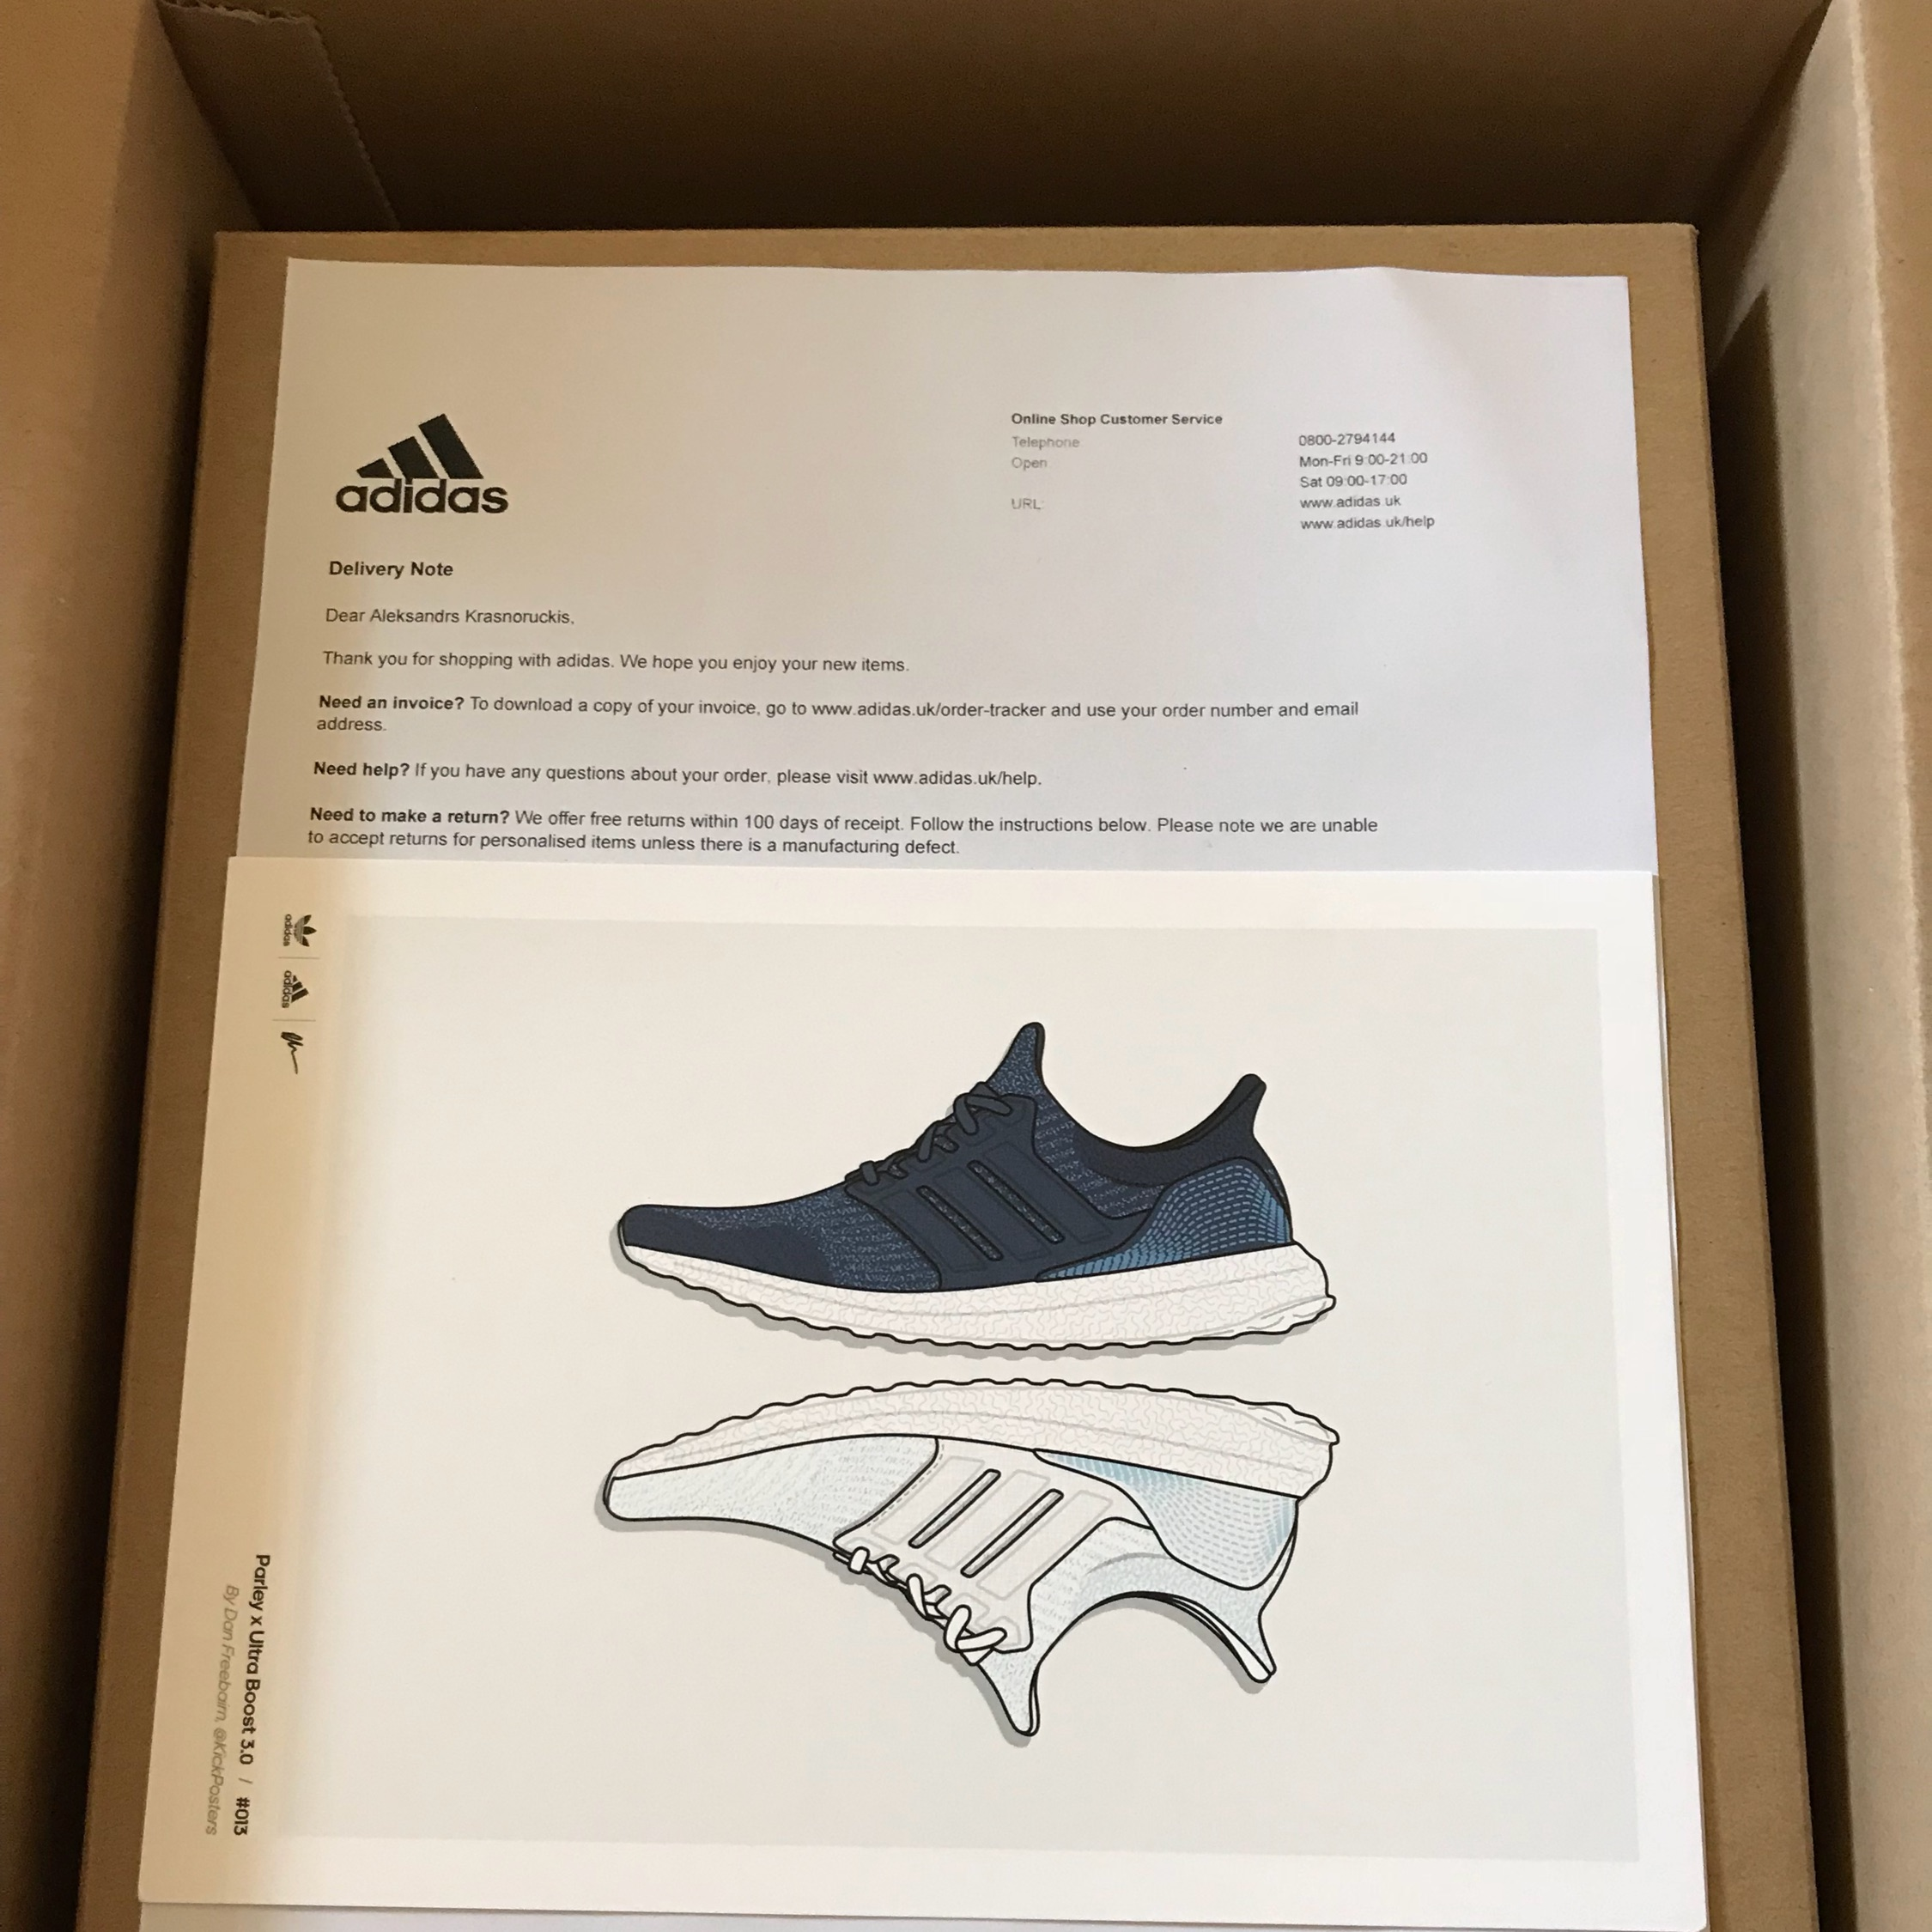 adidas contact email address